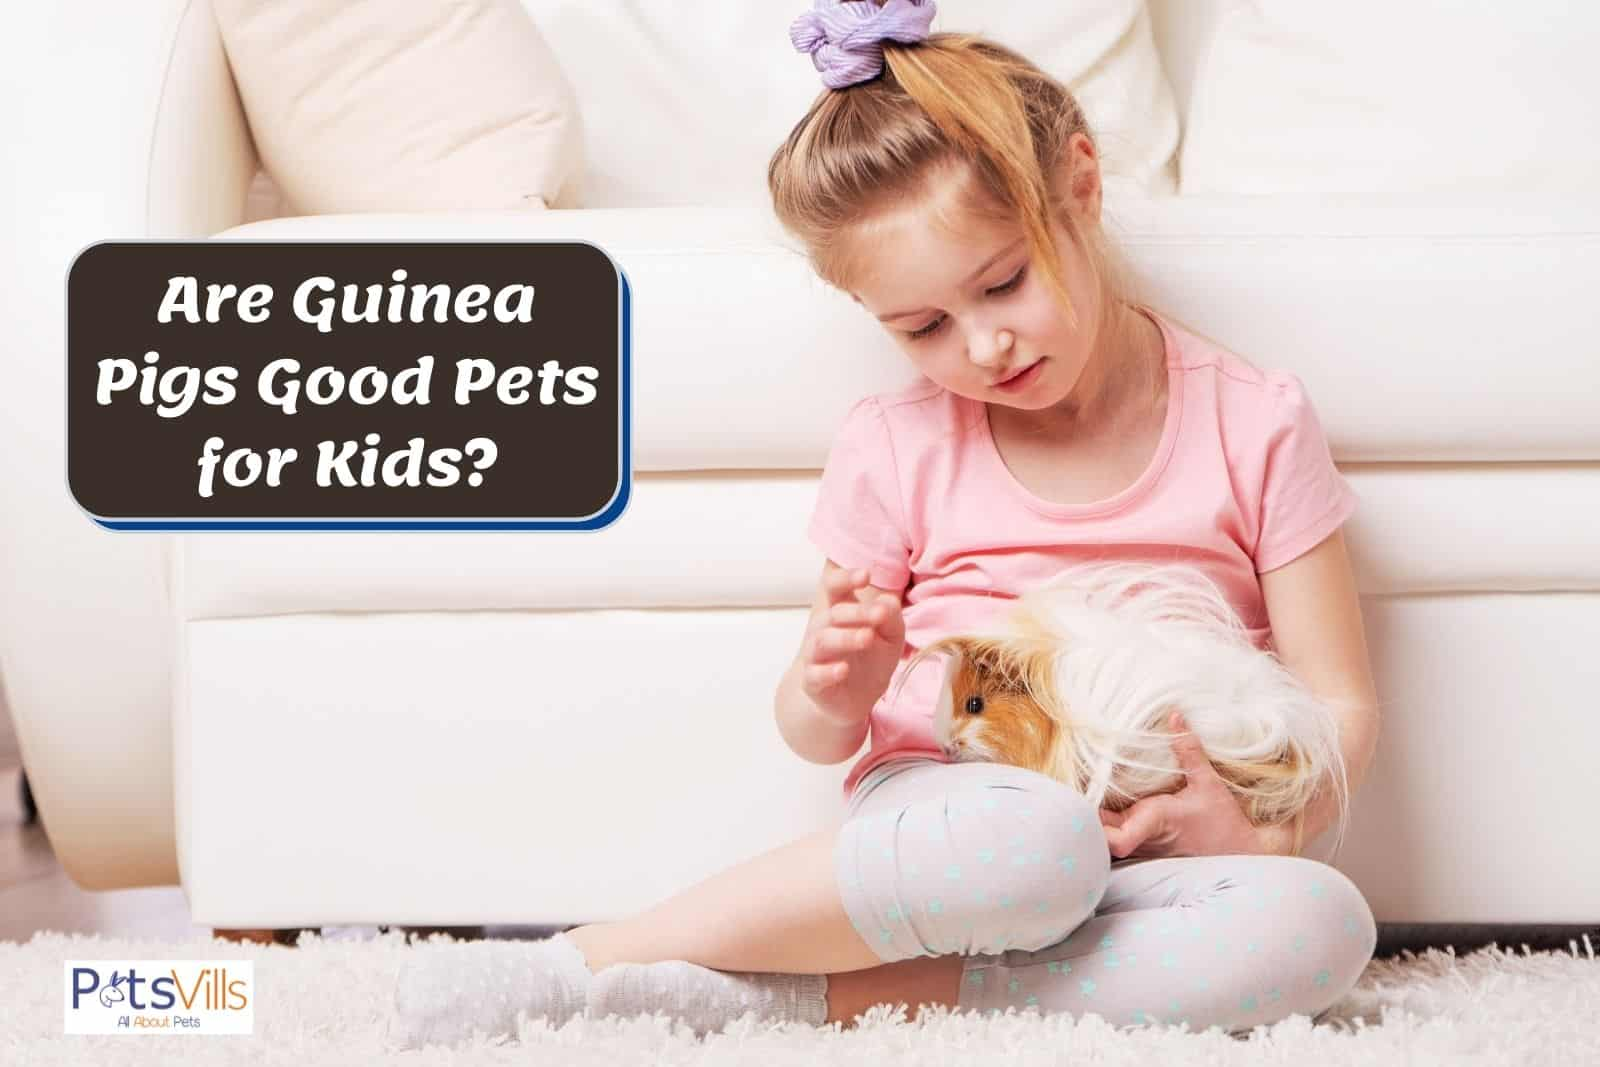 a kid plating with guinea pig, are guinea pigs good pets for kids